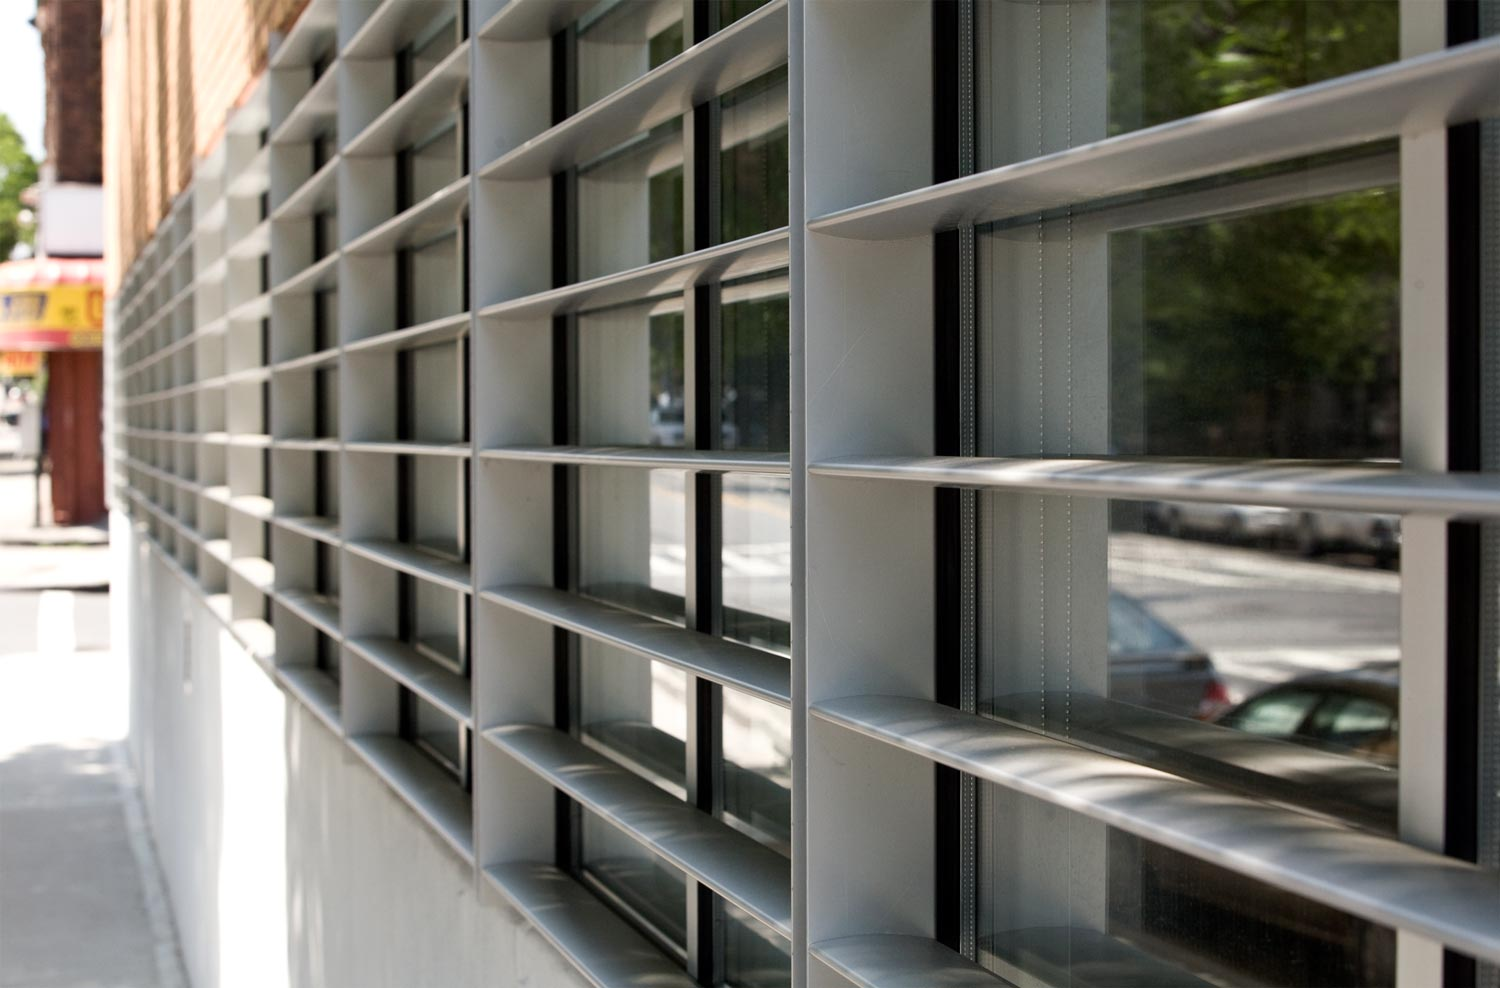 Among the sustainable features is a Trespa rain screen and aluminium sunscreen.